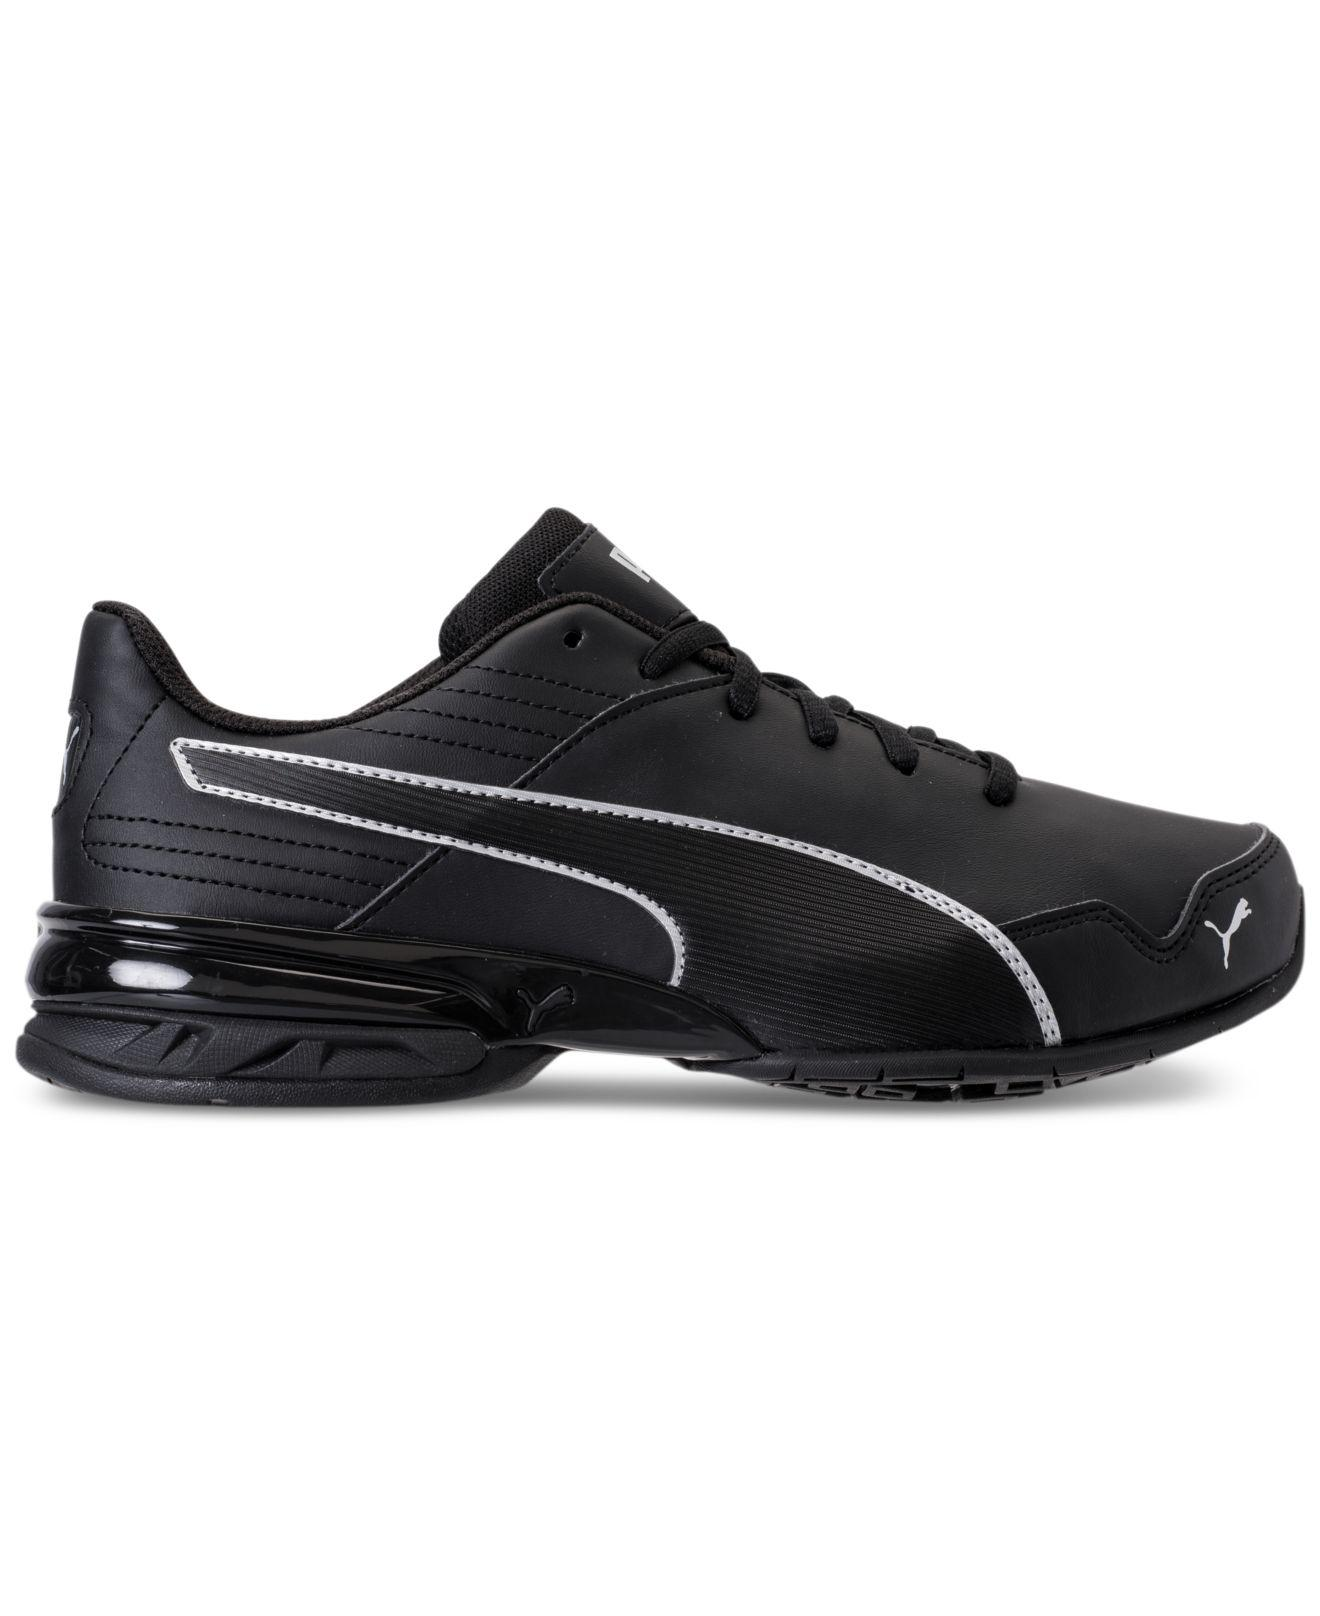 size 40 0dcd3 4a070 ... Shoes BlackWhite 19097402 BLK PUMA Black Mens Super Levitate Running  Sneakers From Finish Line for Men Lyst.